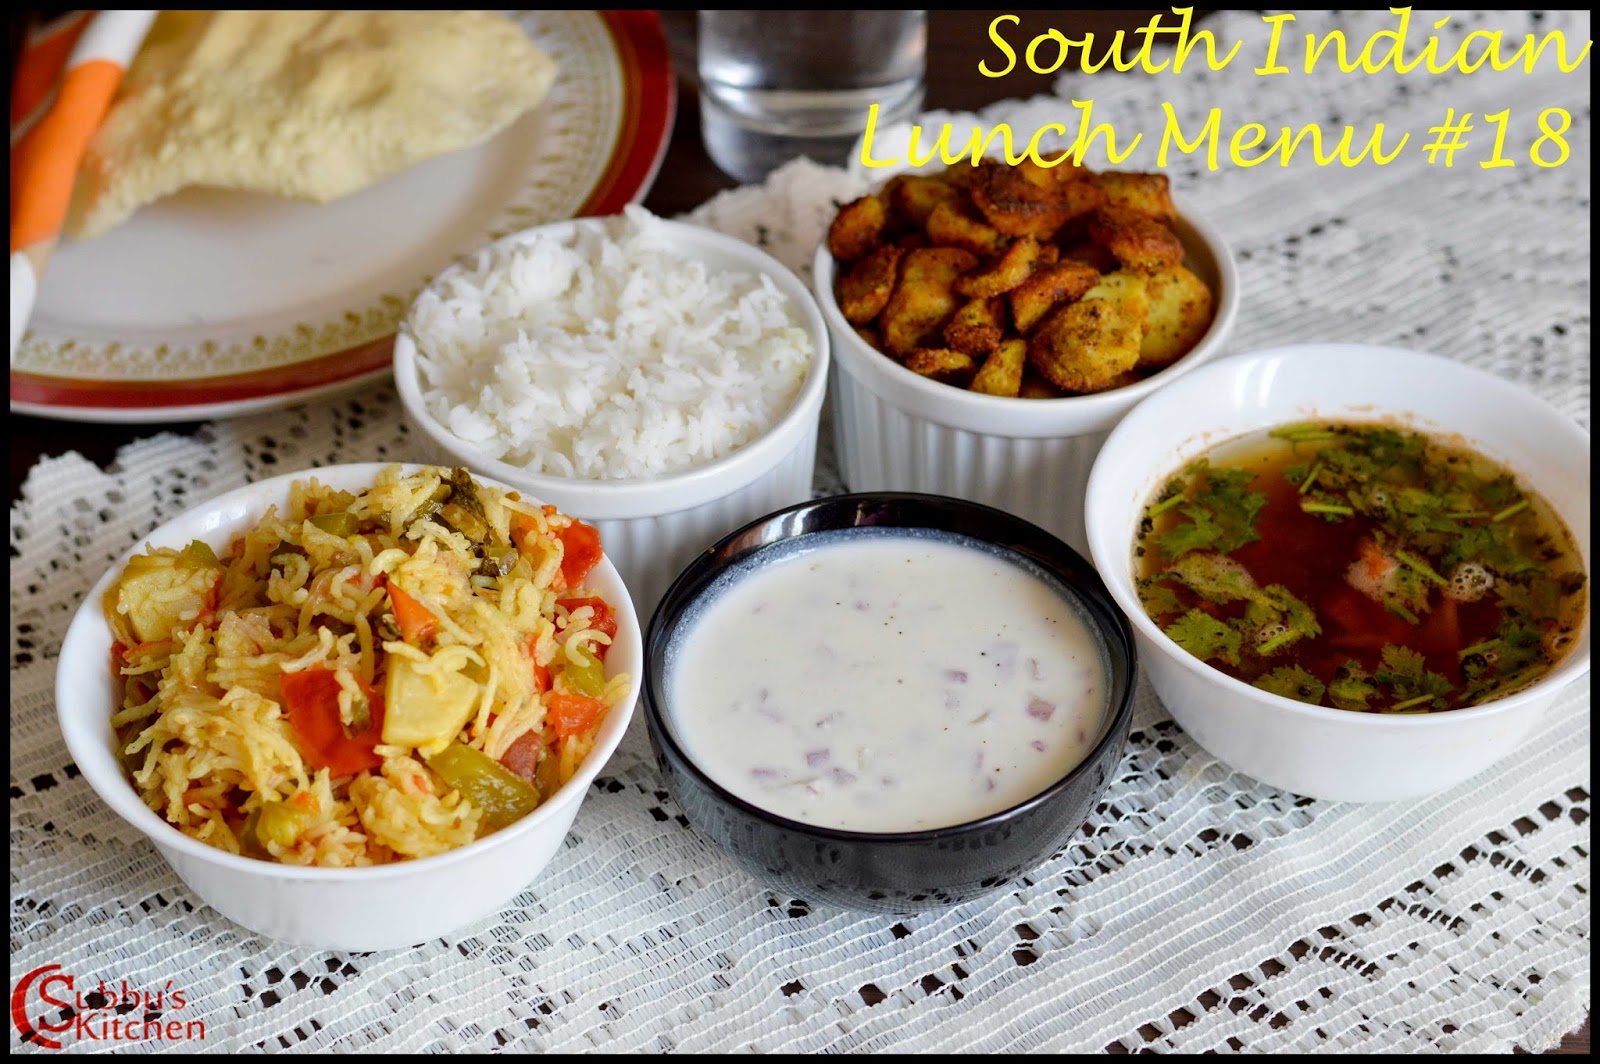 South Indian Lunch Menu 18 - Andhra Tomato Rice, Onion Raitha, Poricha Rasam, Tara Root Fry, Plain rice and pappad